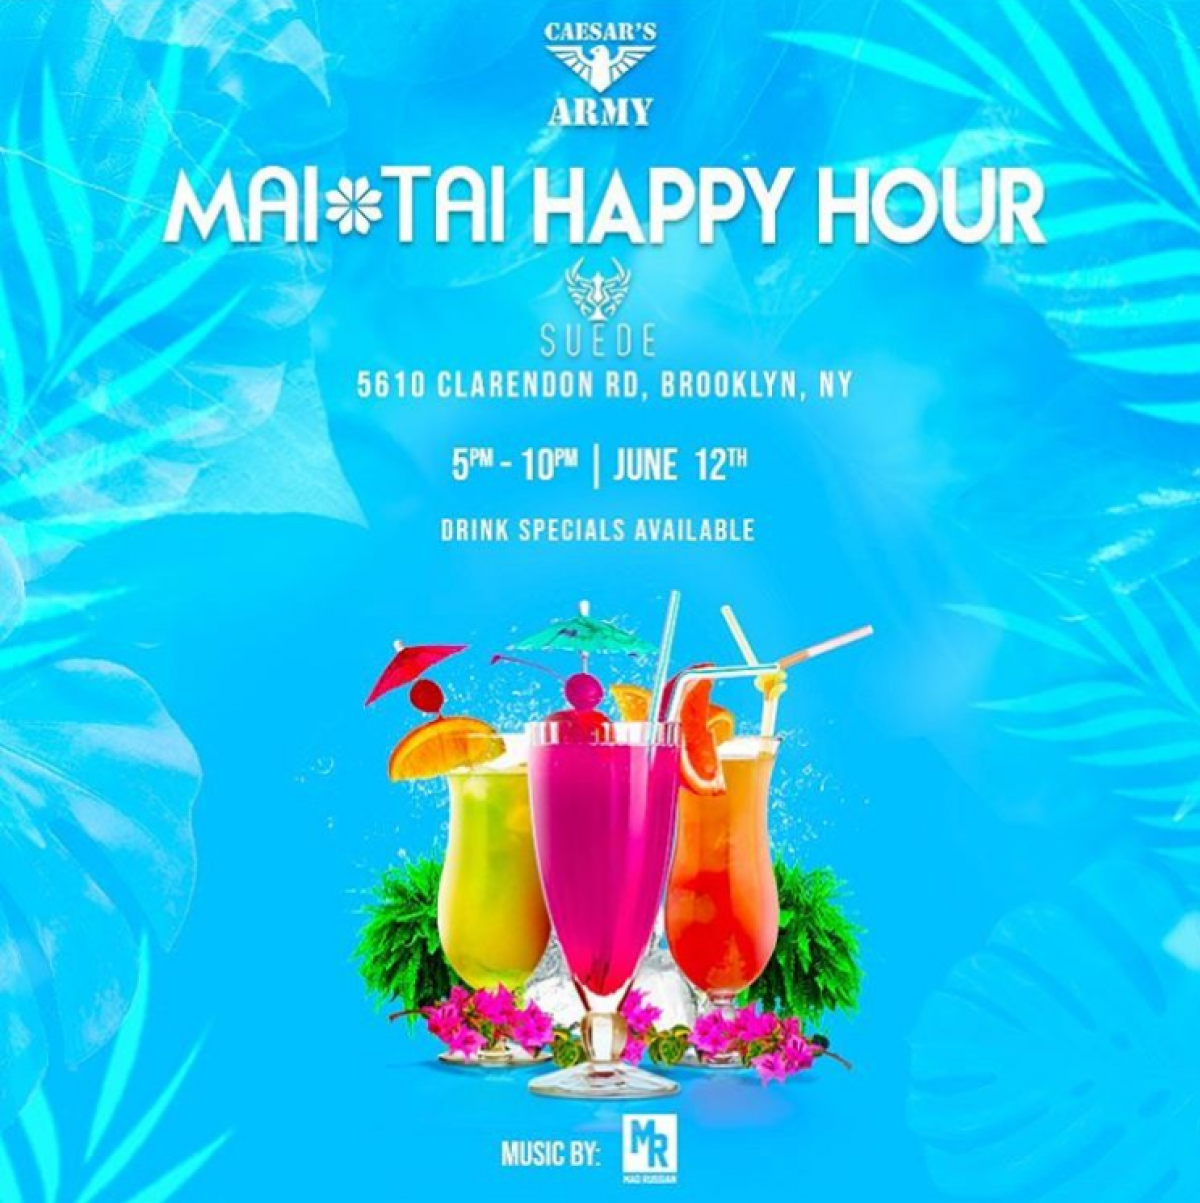 Mai Tai Happy Hour flyer or graphic.